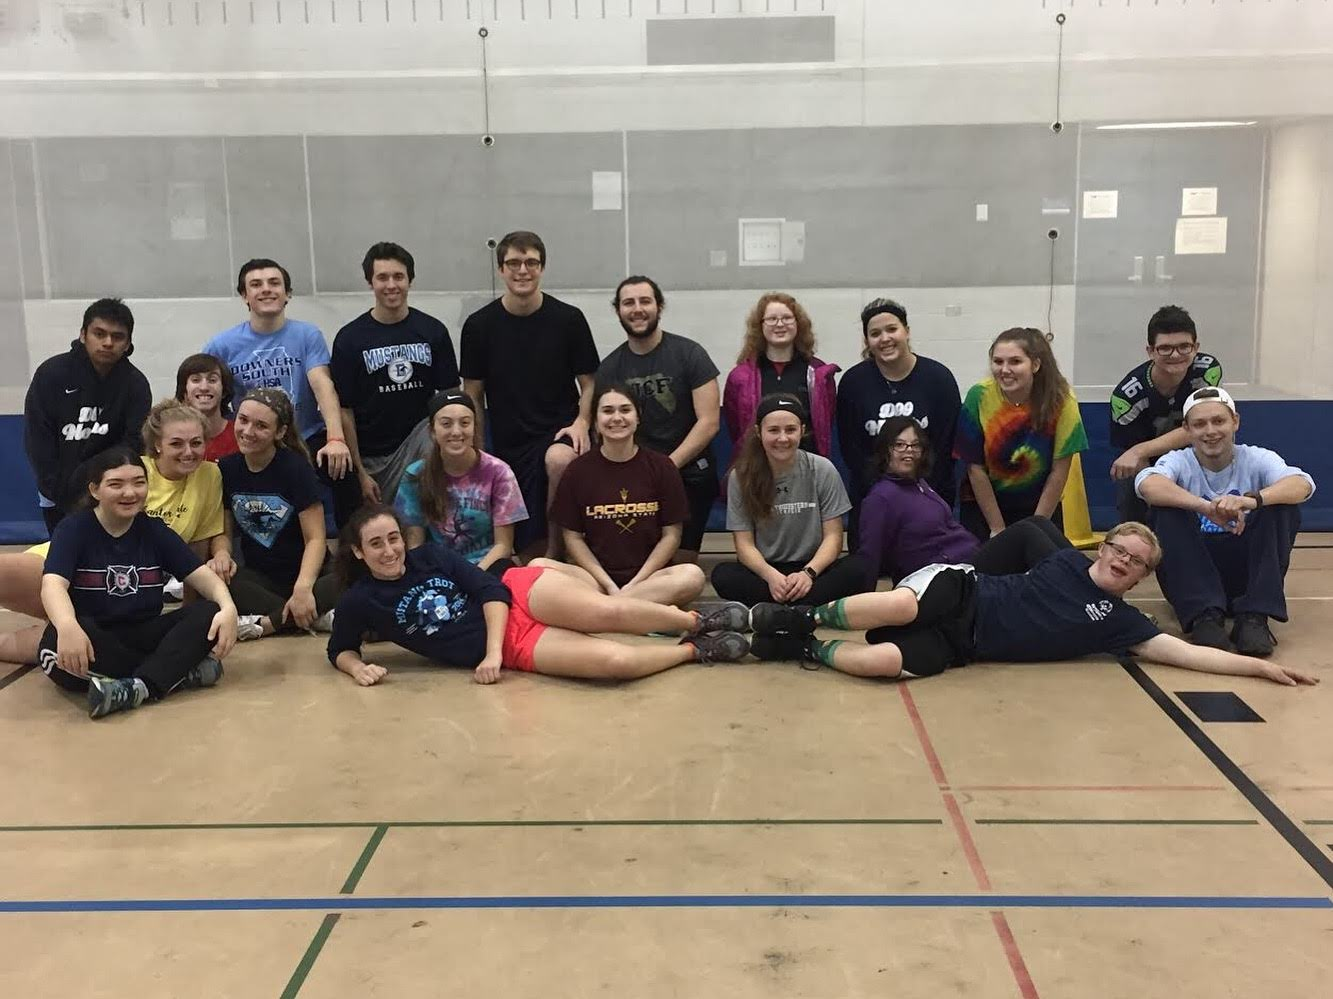 Club Unified on a field day